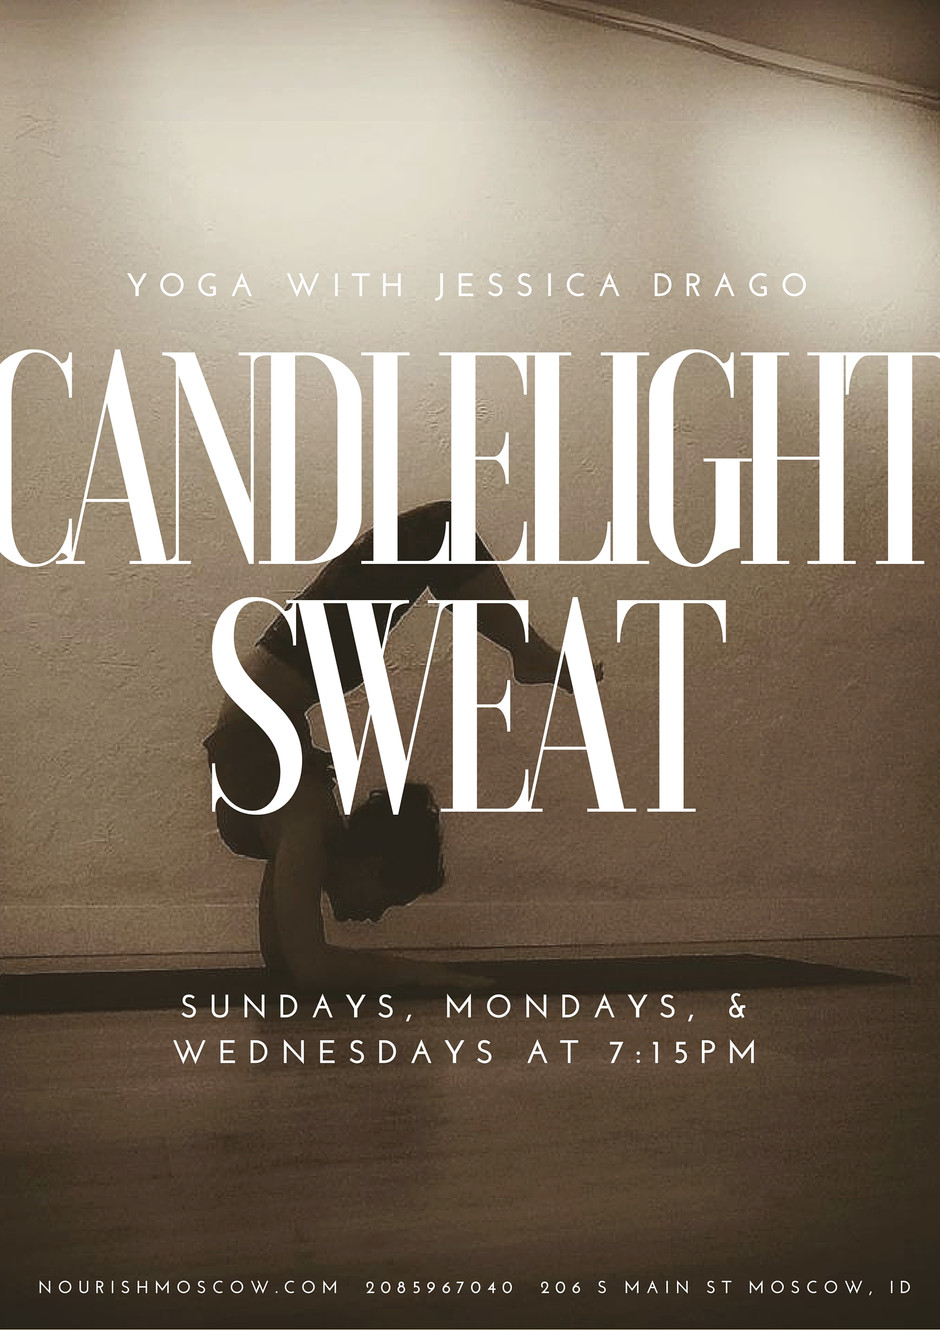 Candlelight Sweat